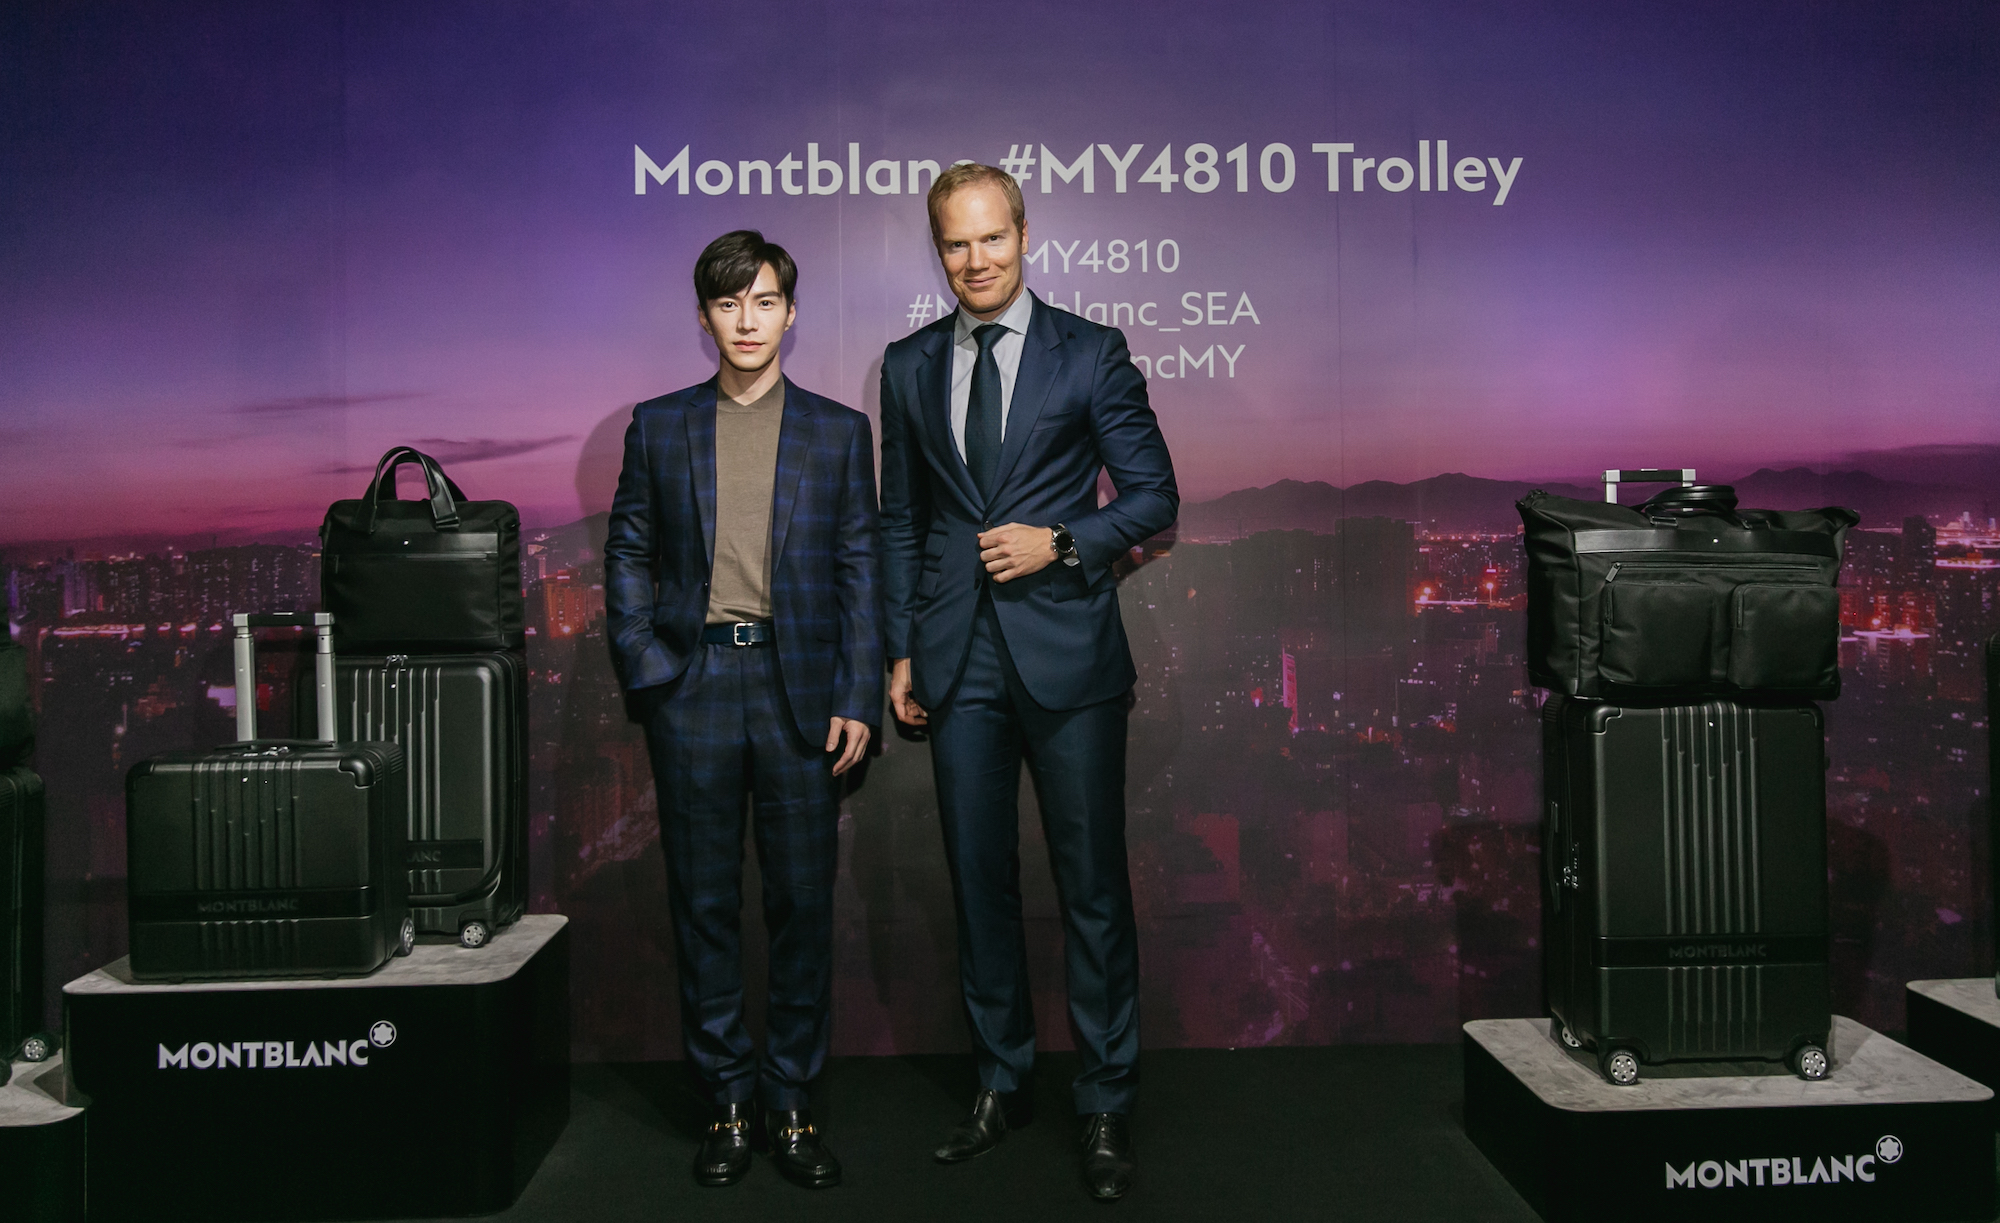 The Montblanc #MY4810 Trolley Is The Ultimate Companion For Urban Explorers